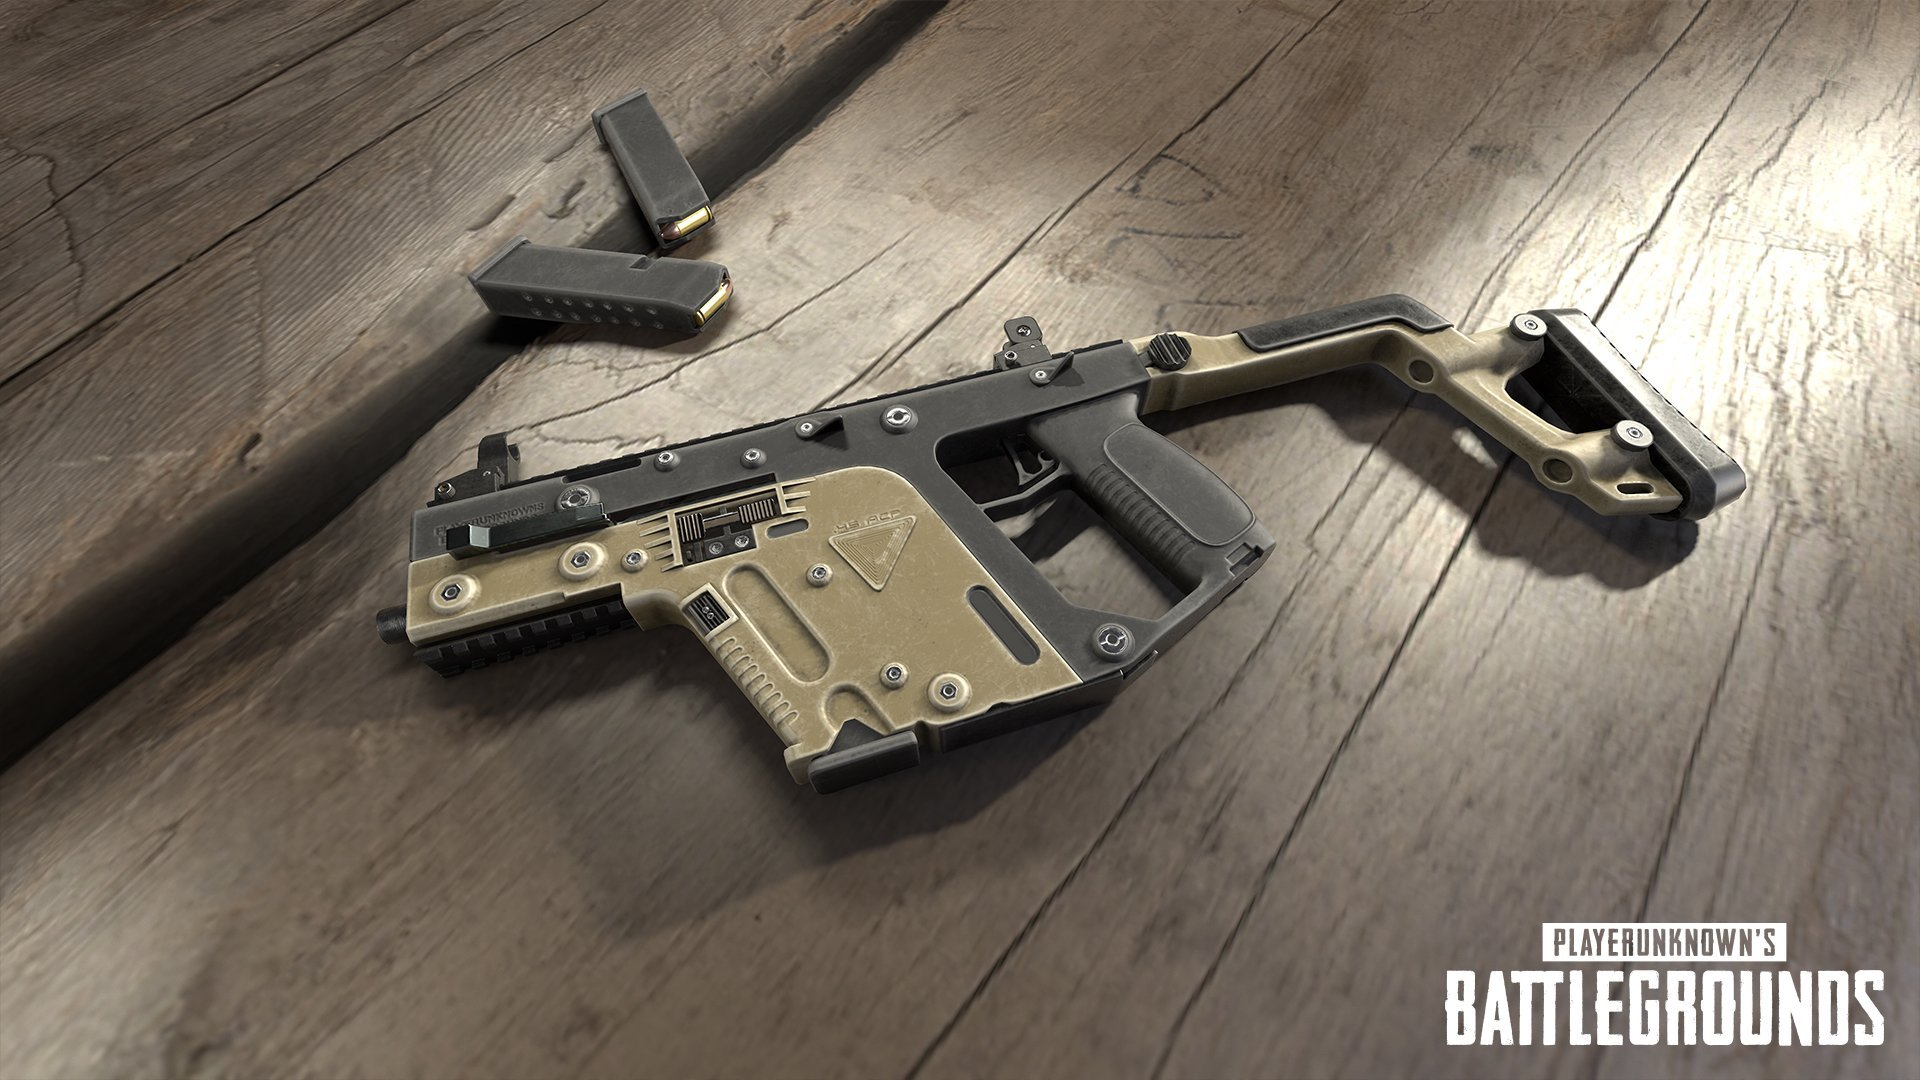 Pubg Gun Wallpaper 4k: PUBG Weapons Guide